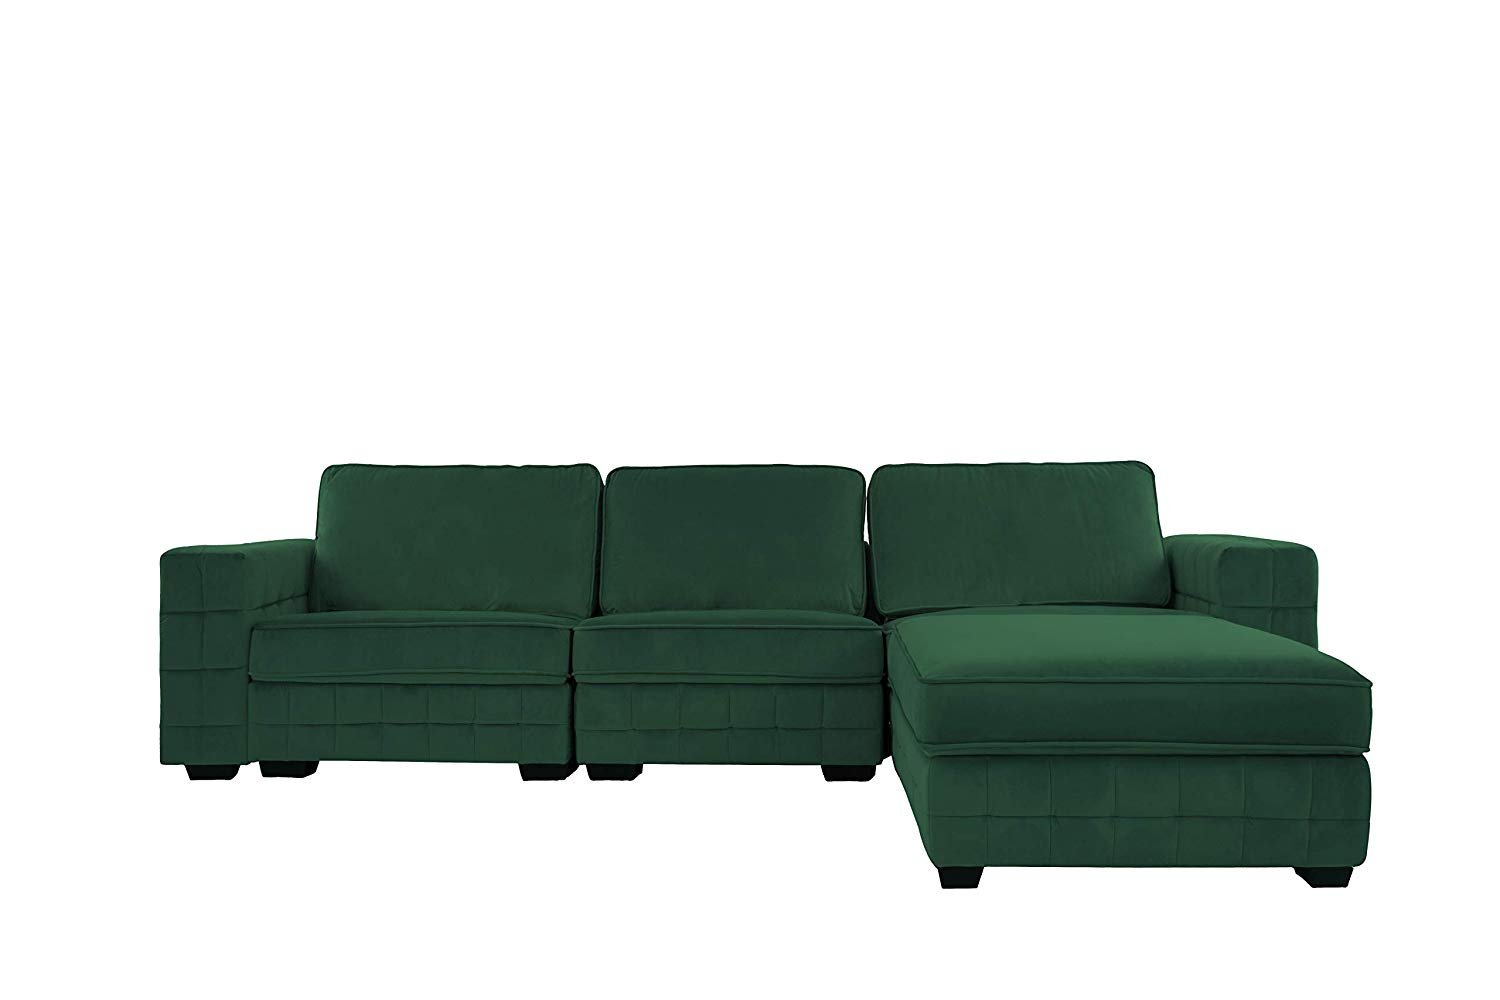 Details about Green Velvet Fabric Sectional Sofa for Large Living  Room/Family Room Furniture